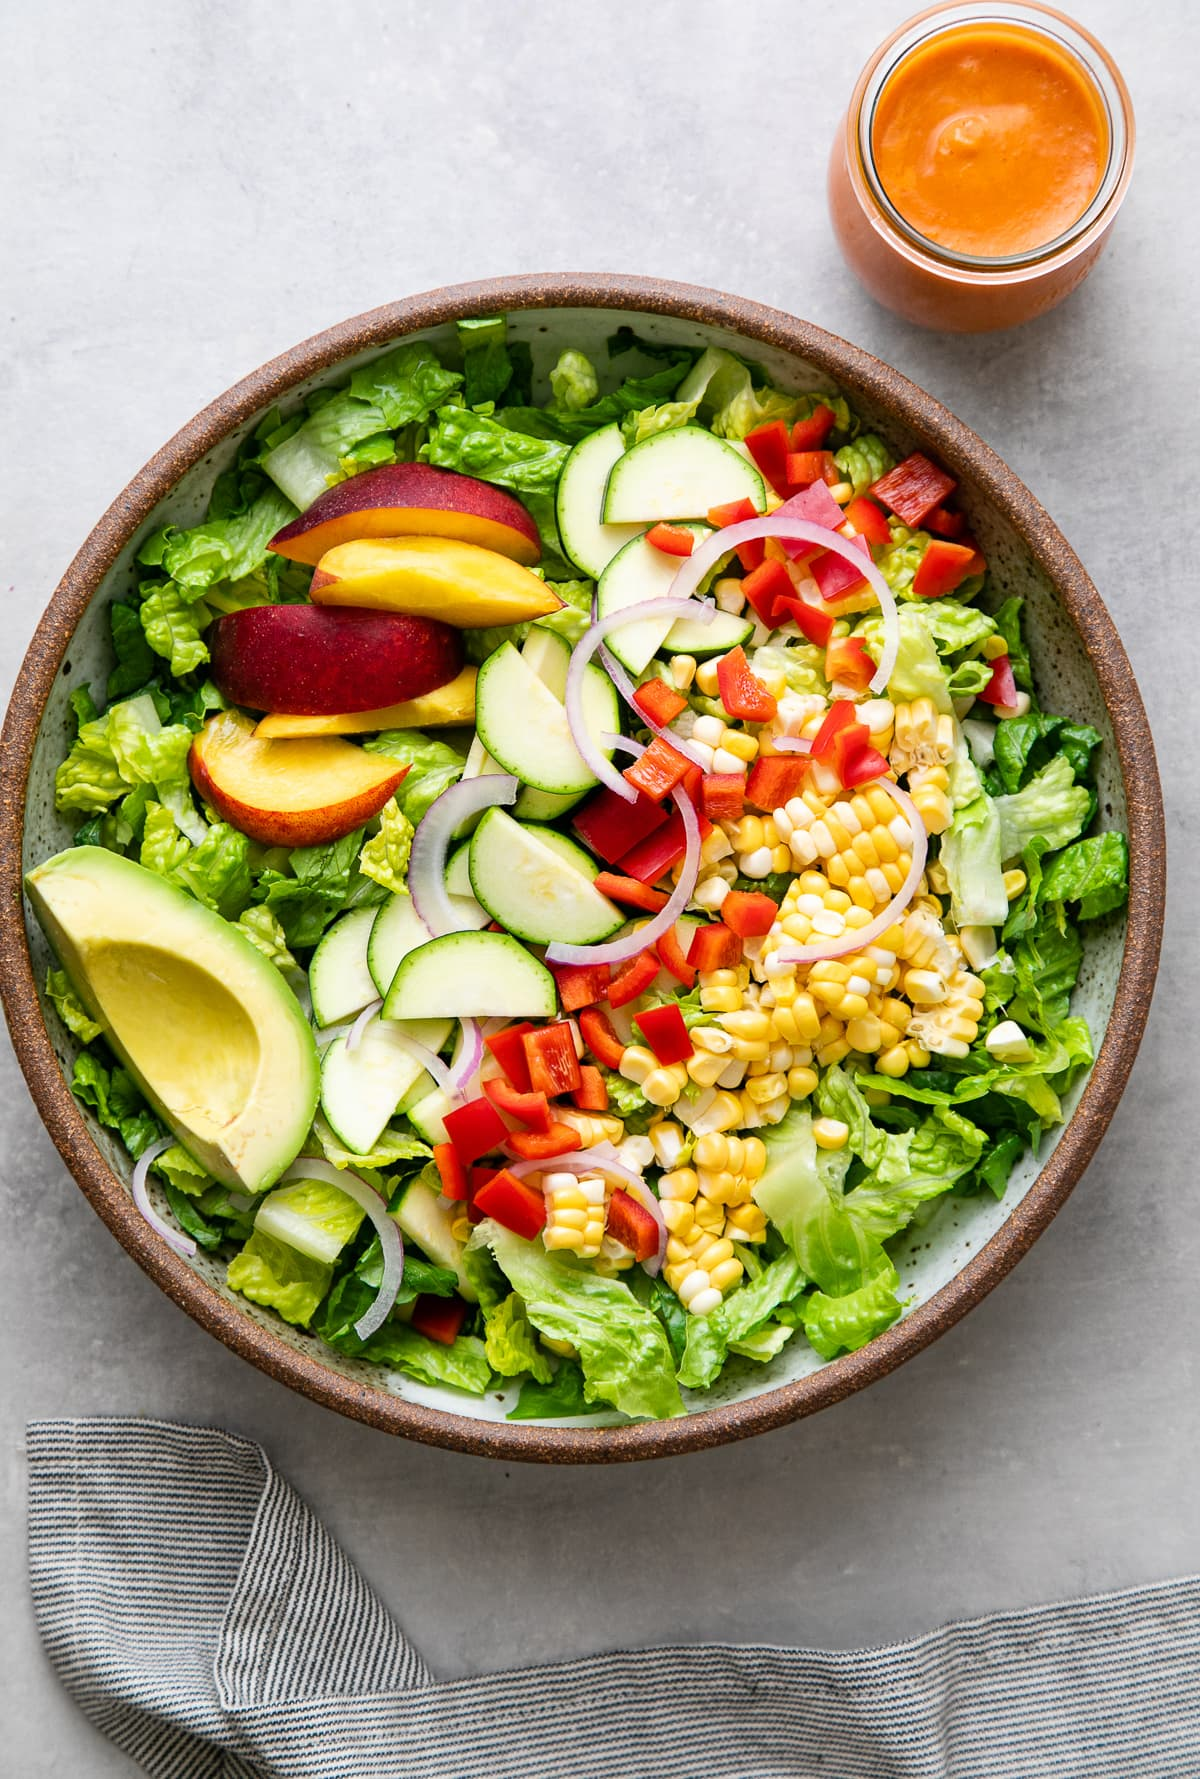 top down view of healthy farmer's market salad in a bowl with dressing on the side in glass jar.